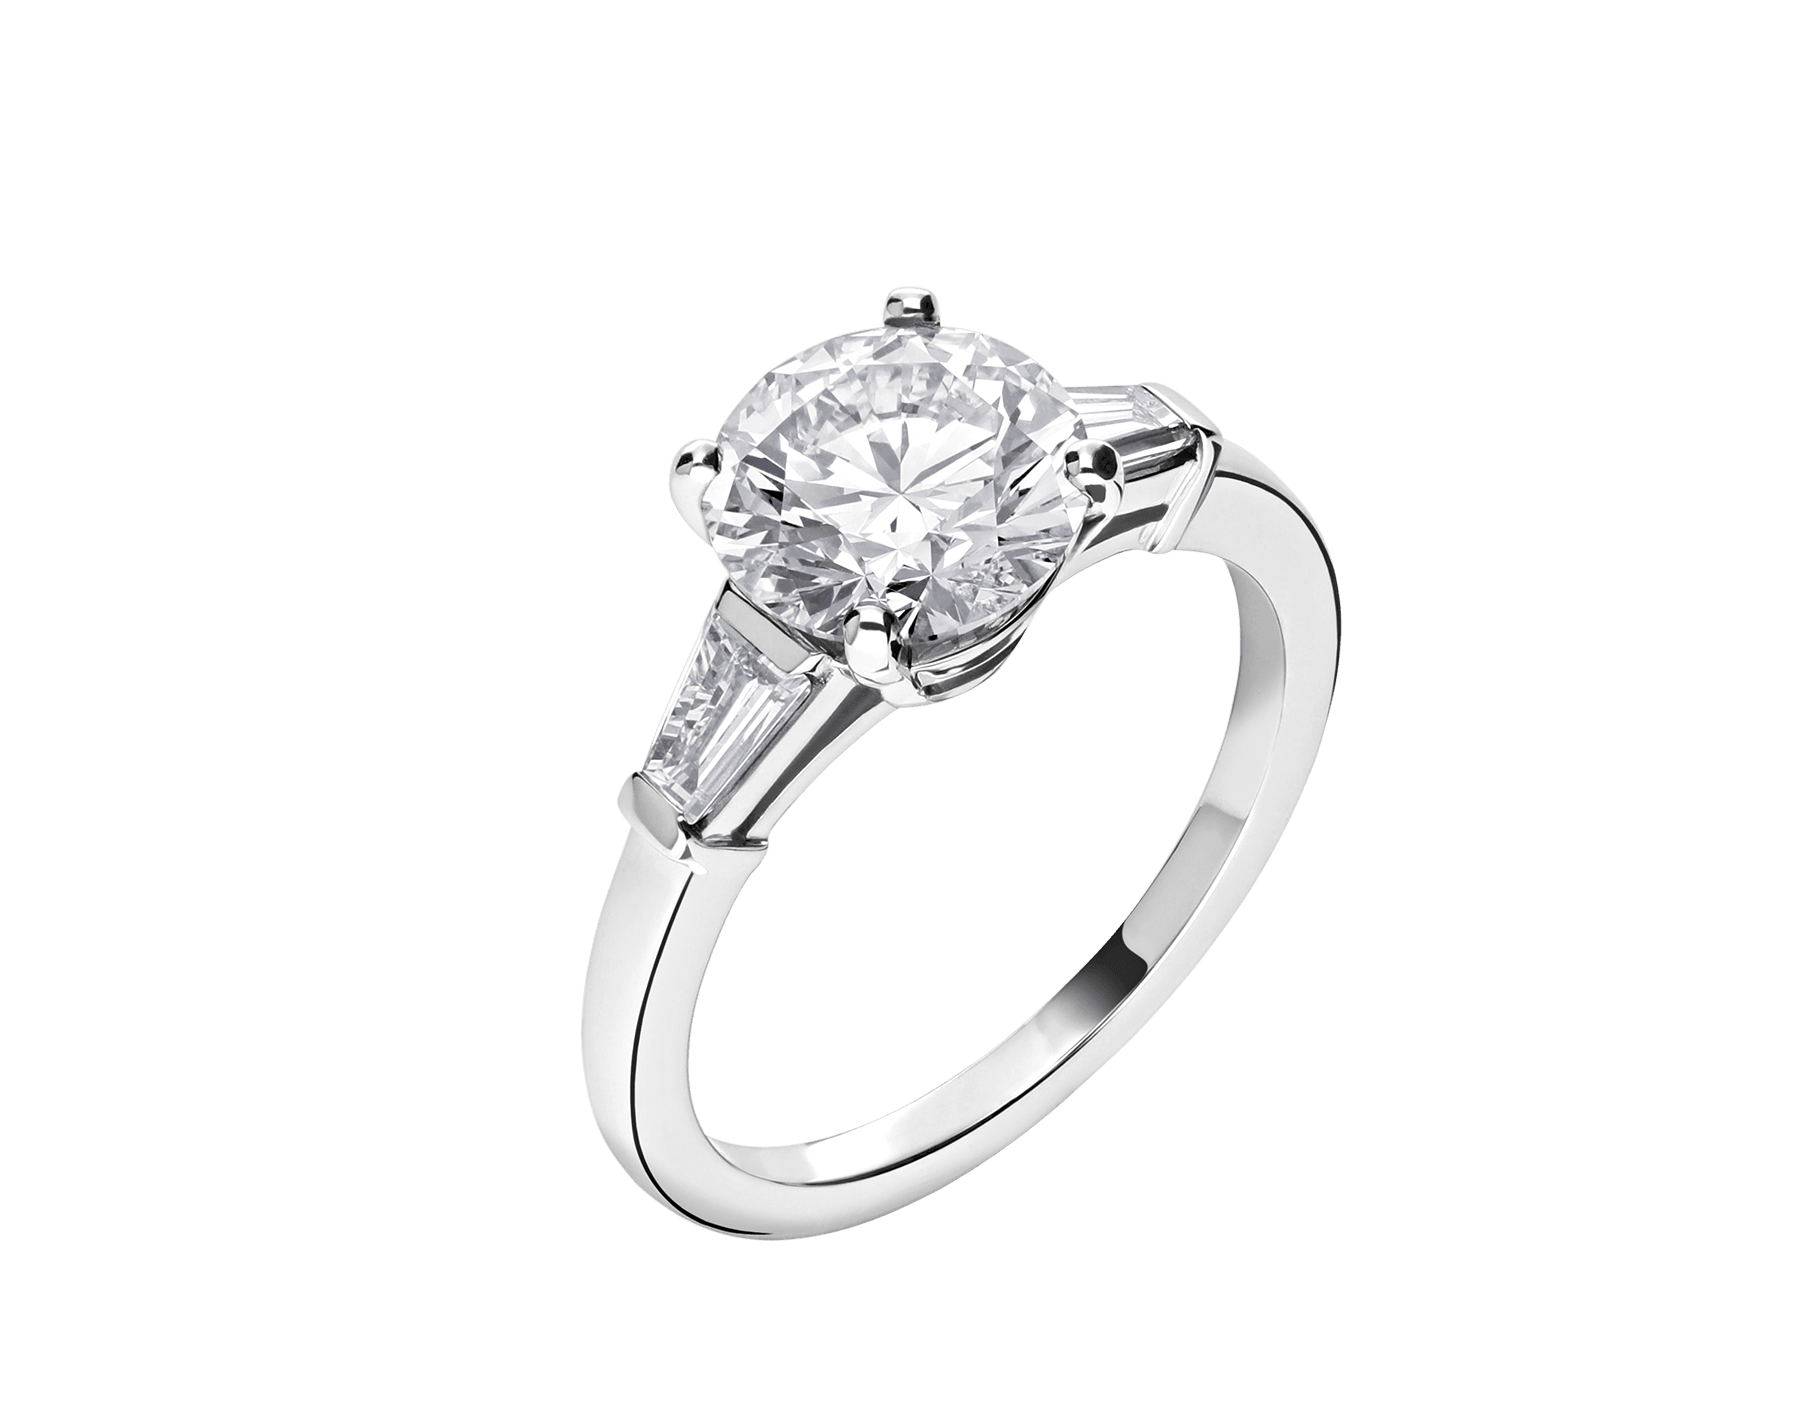 Griffe ring in platinum with round brilliant cut diamond and 2 side diamonds. Available from 1 ct. 331636 image 2